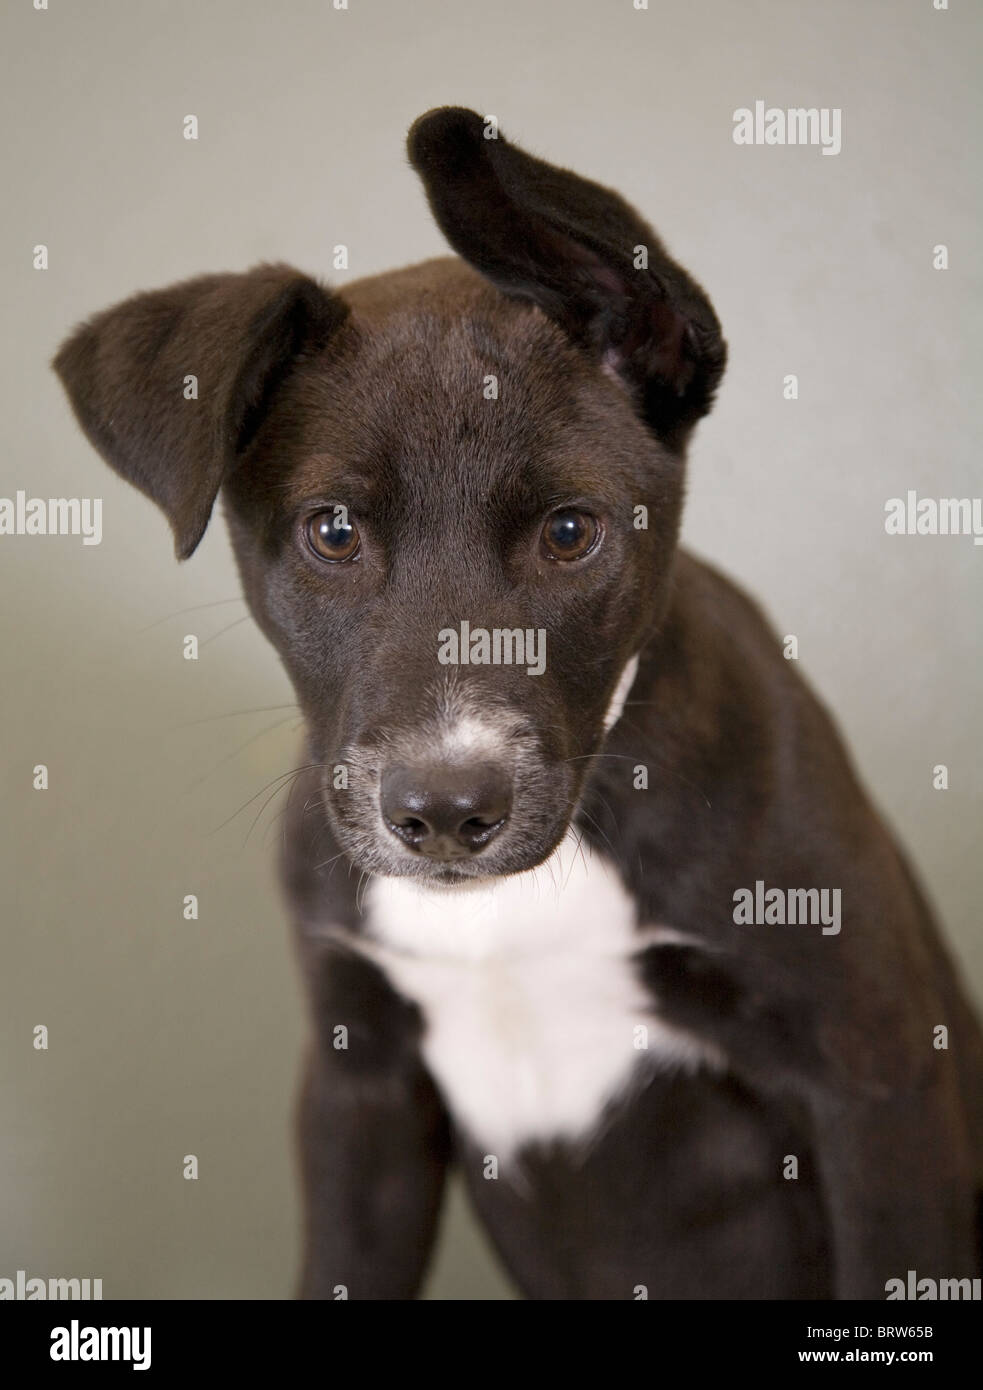 A cute, flop-eared dog at a humane society facility that is up for adoption. - Stock Image